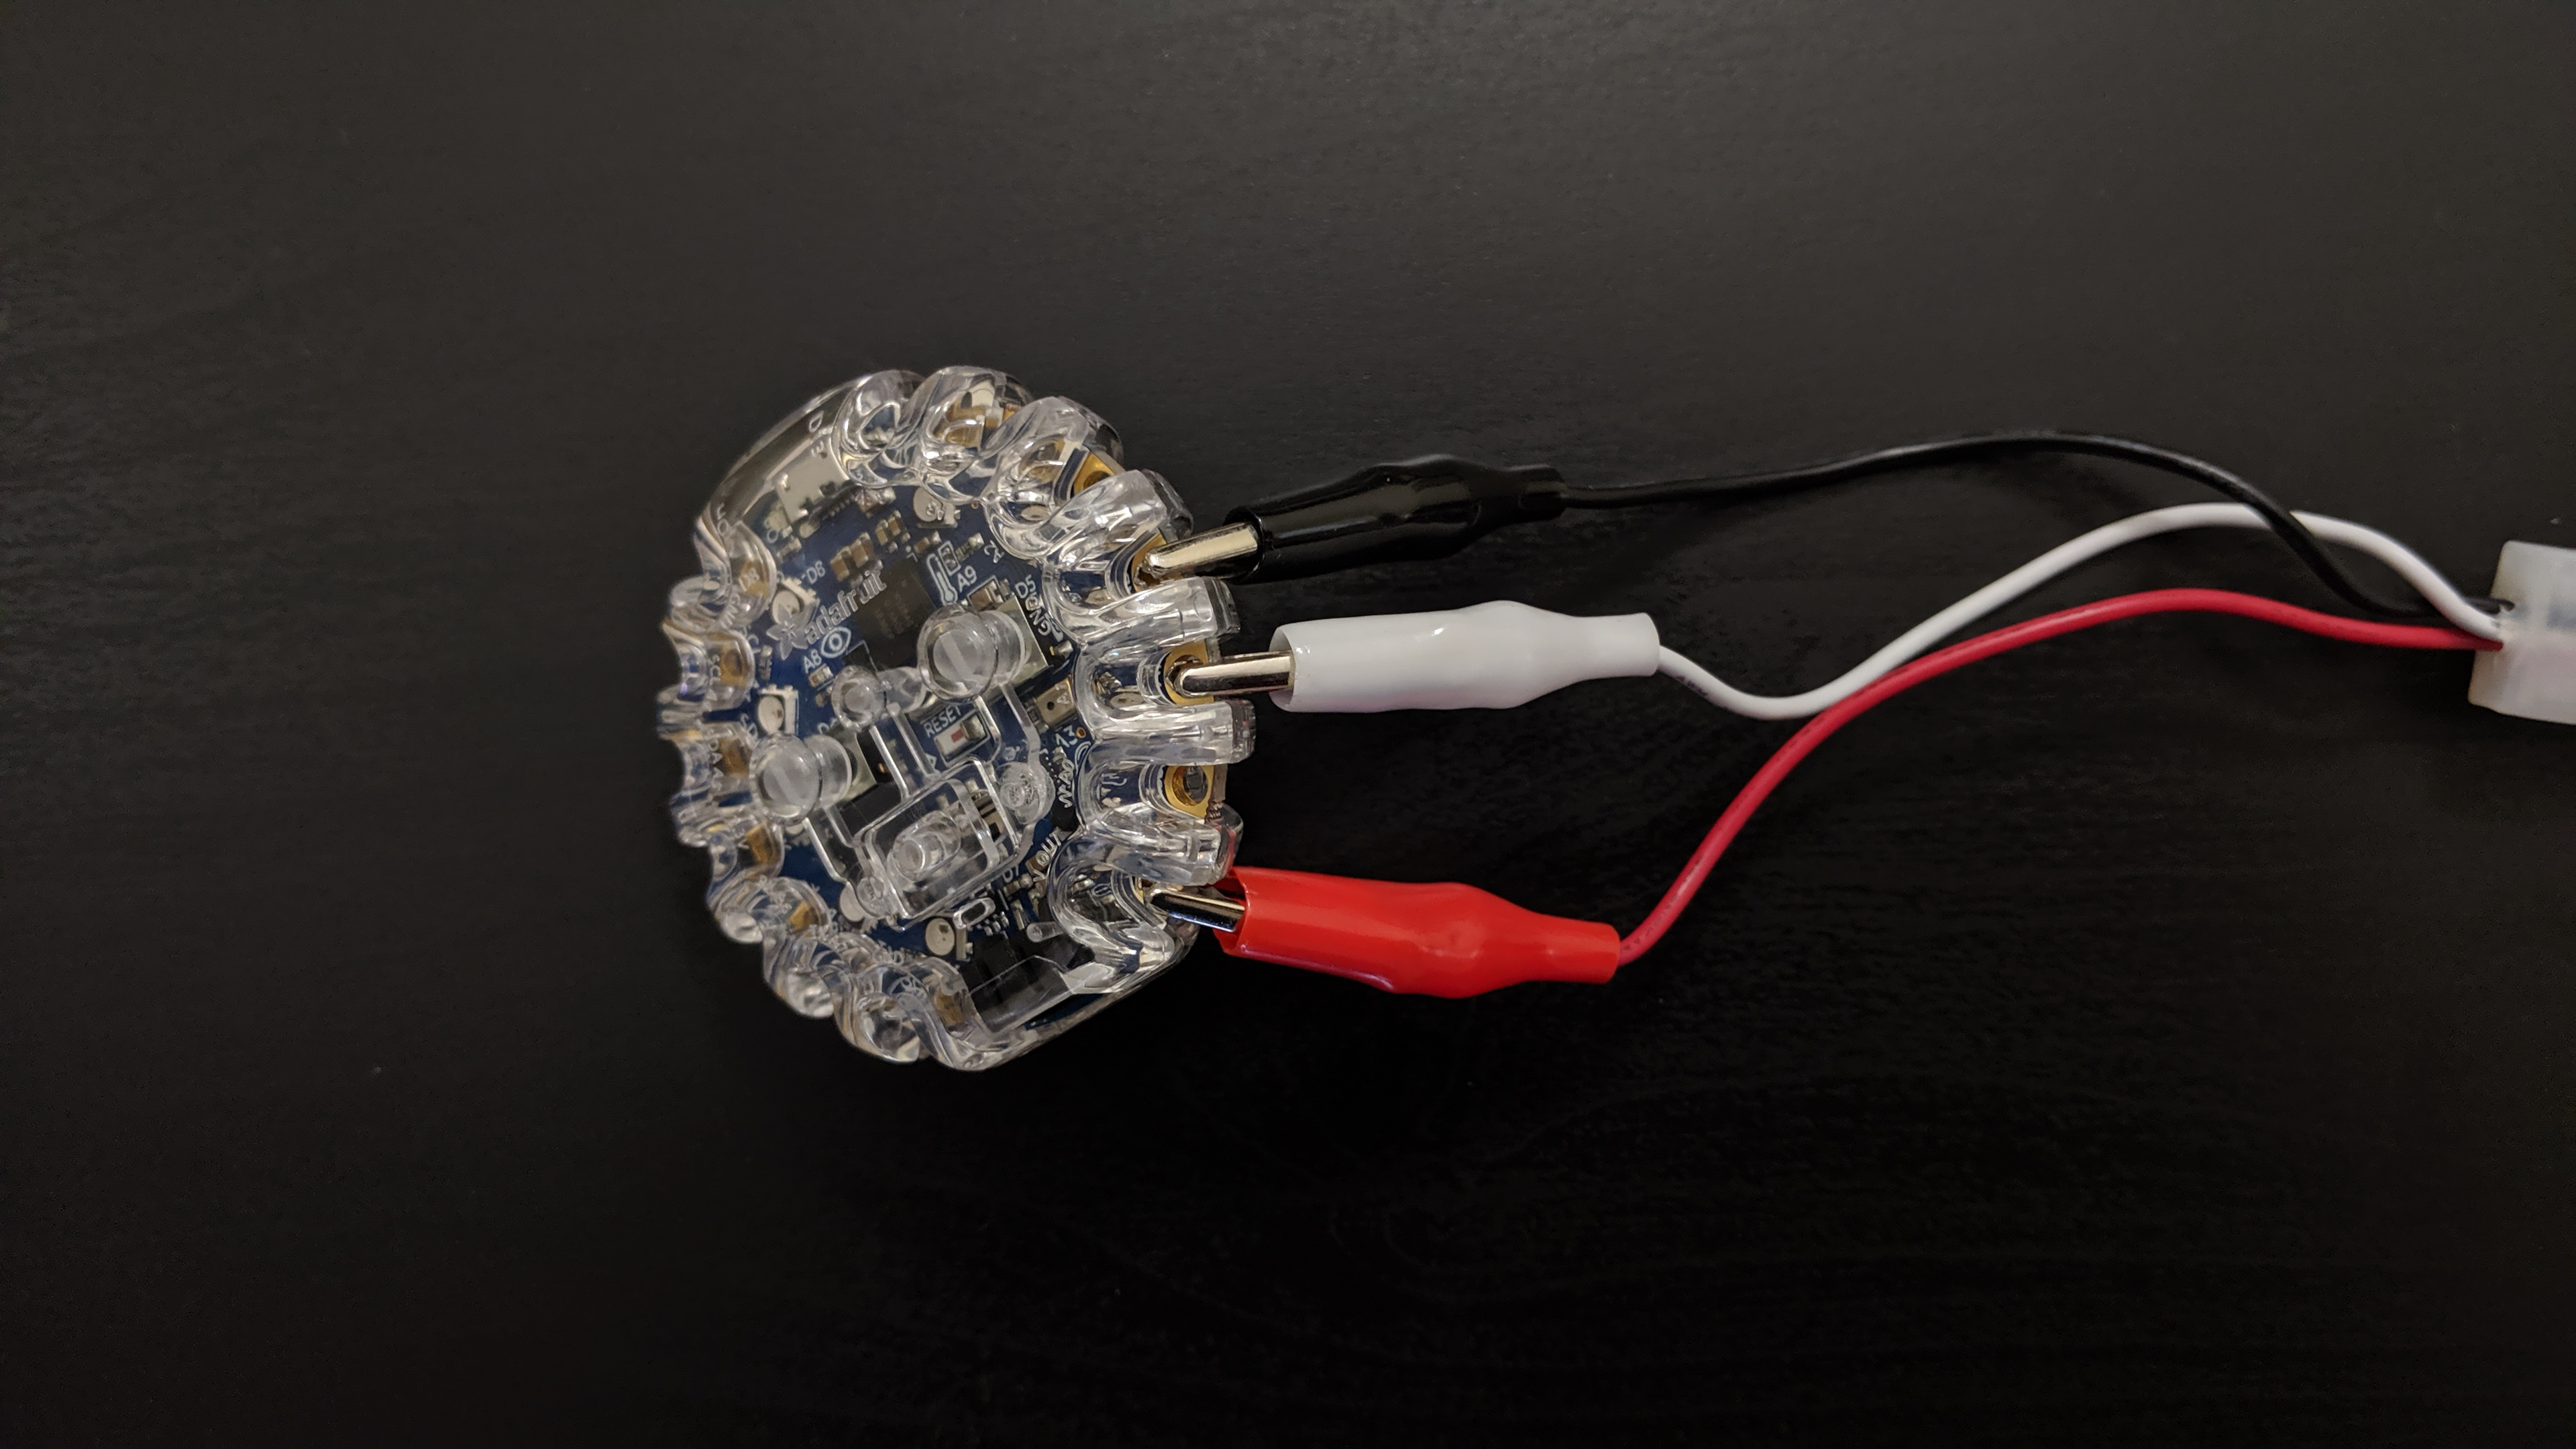 leds_CPB_NeoPIxel_Controller_single_strip_clipped_to_CPB.jpg